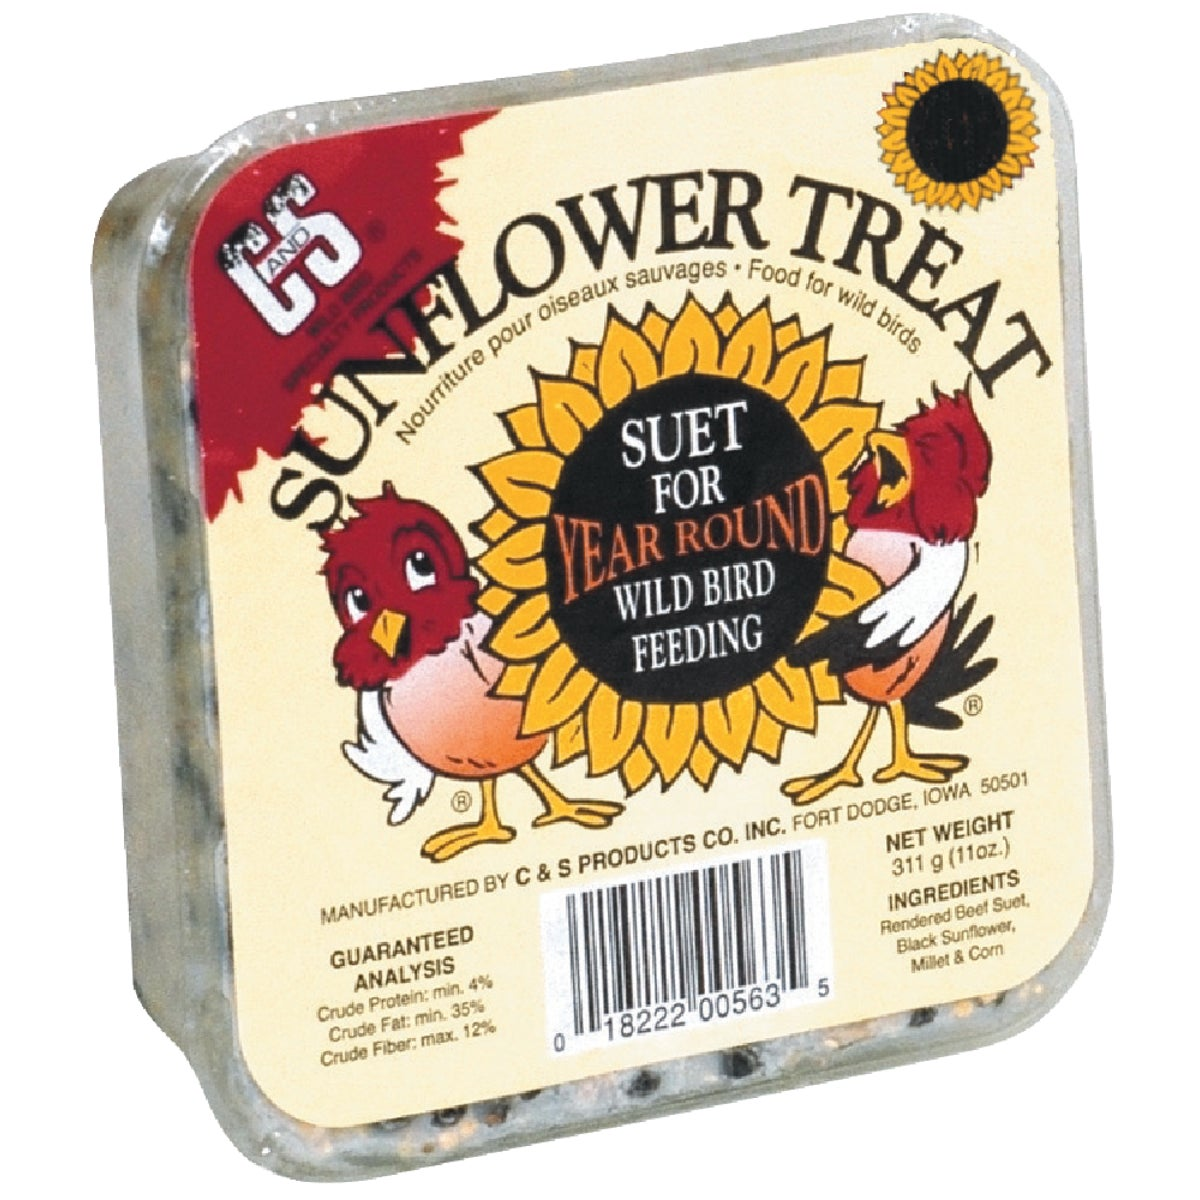 SUNFLOWER SUET - 12563 by C & S Products Inc